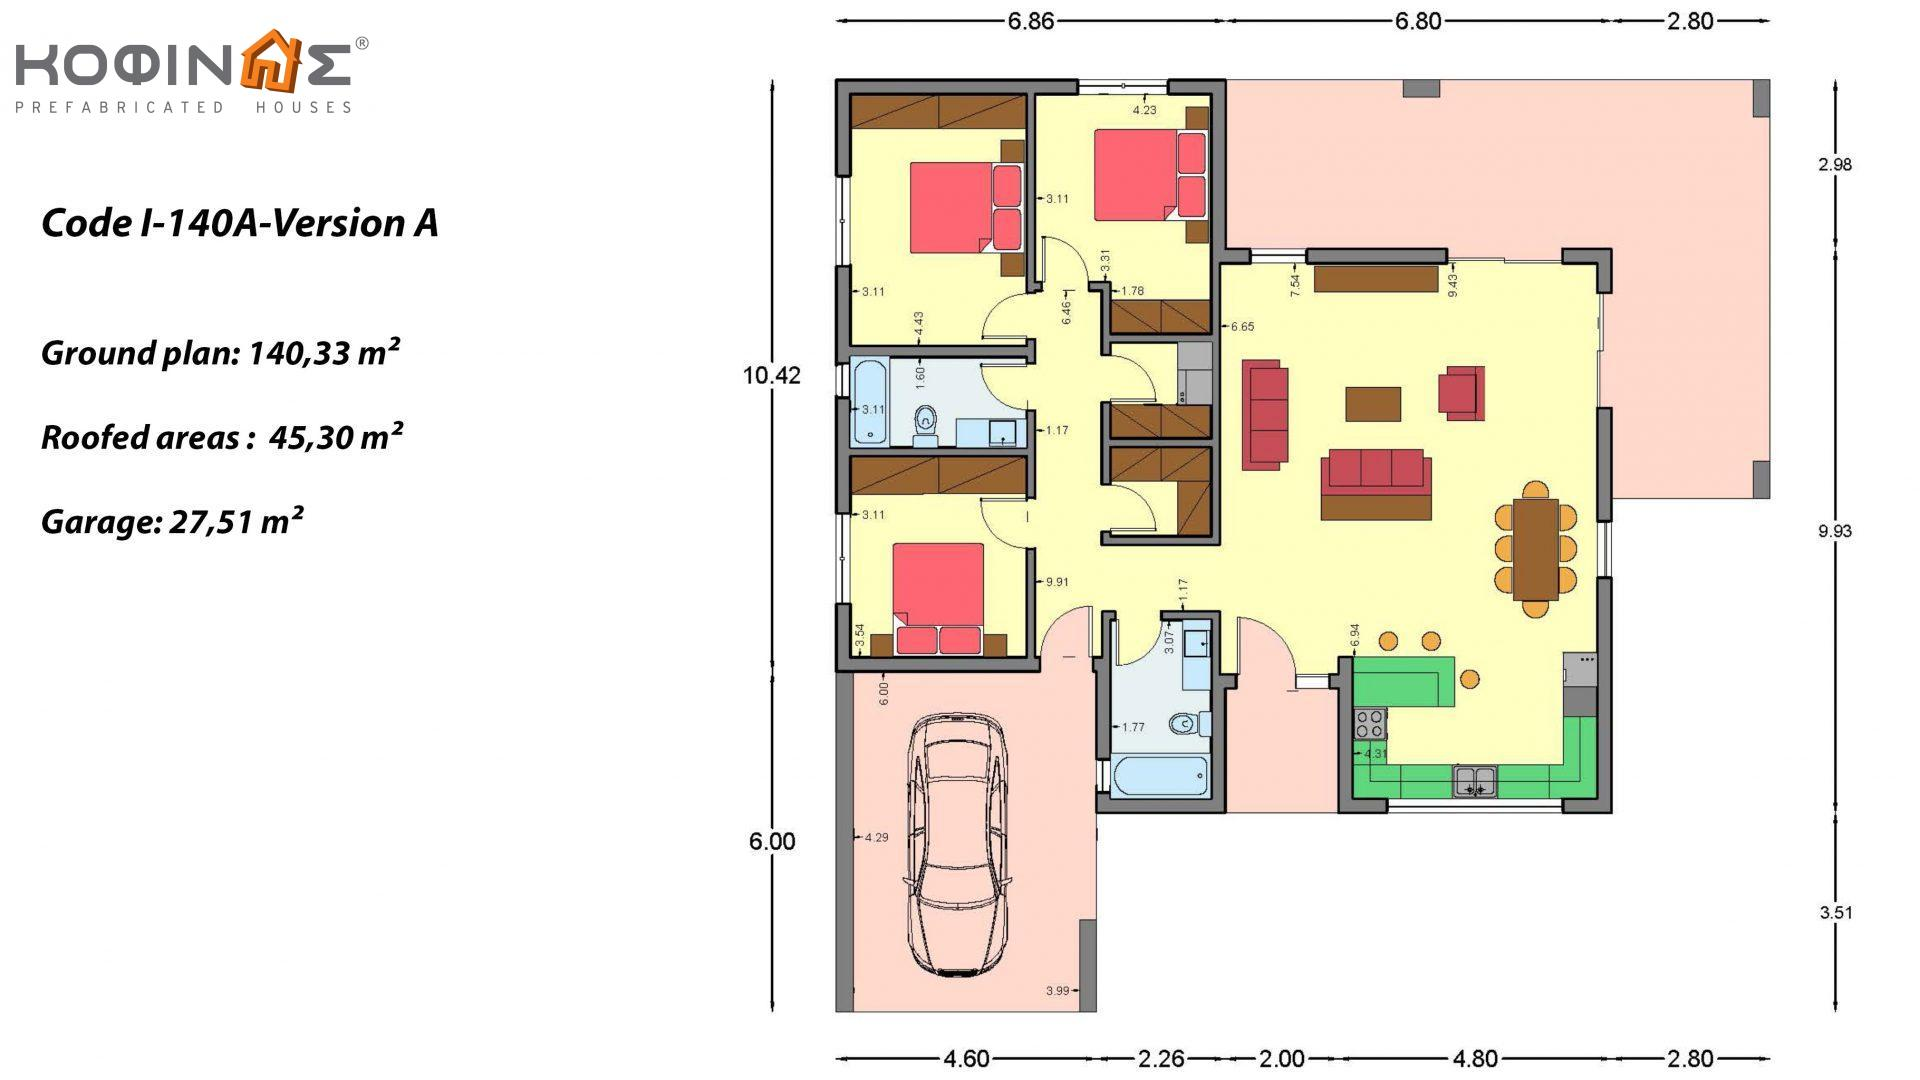 1-story house Ι-140Α, total surface of 140,33 m², +Garage 27.51 m²(=167,84 m²), roofed areas 45,30 m² and 44,71 m² for version Β